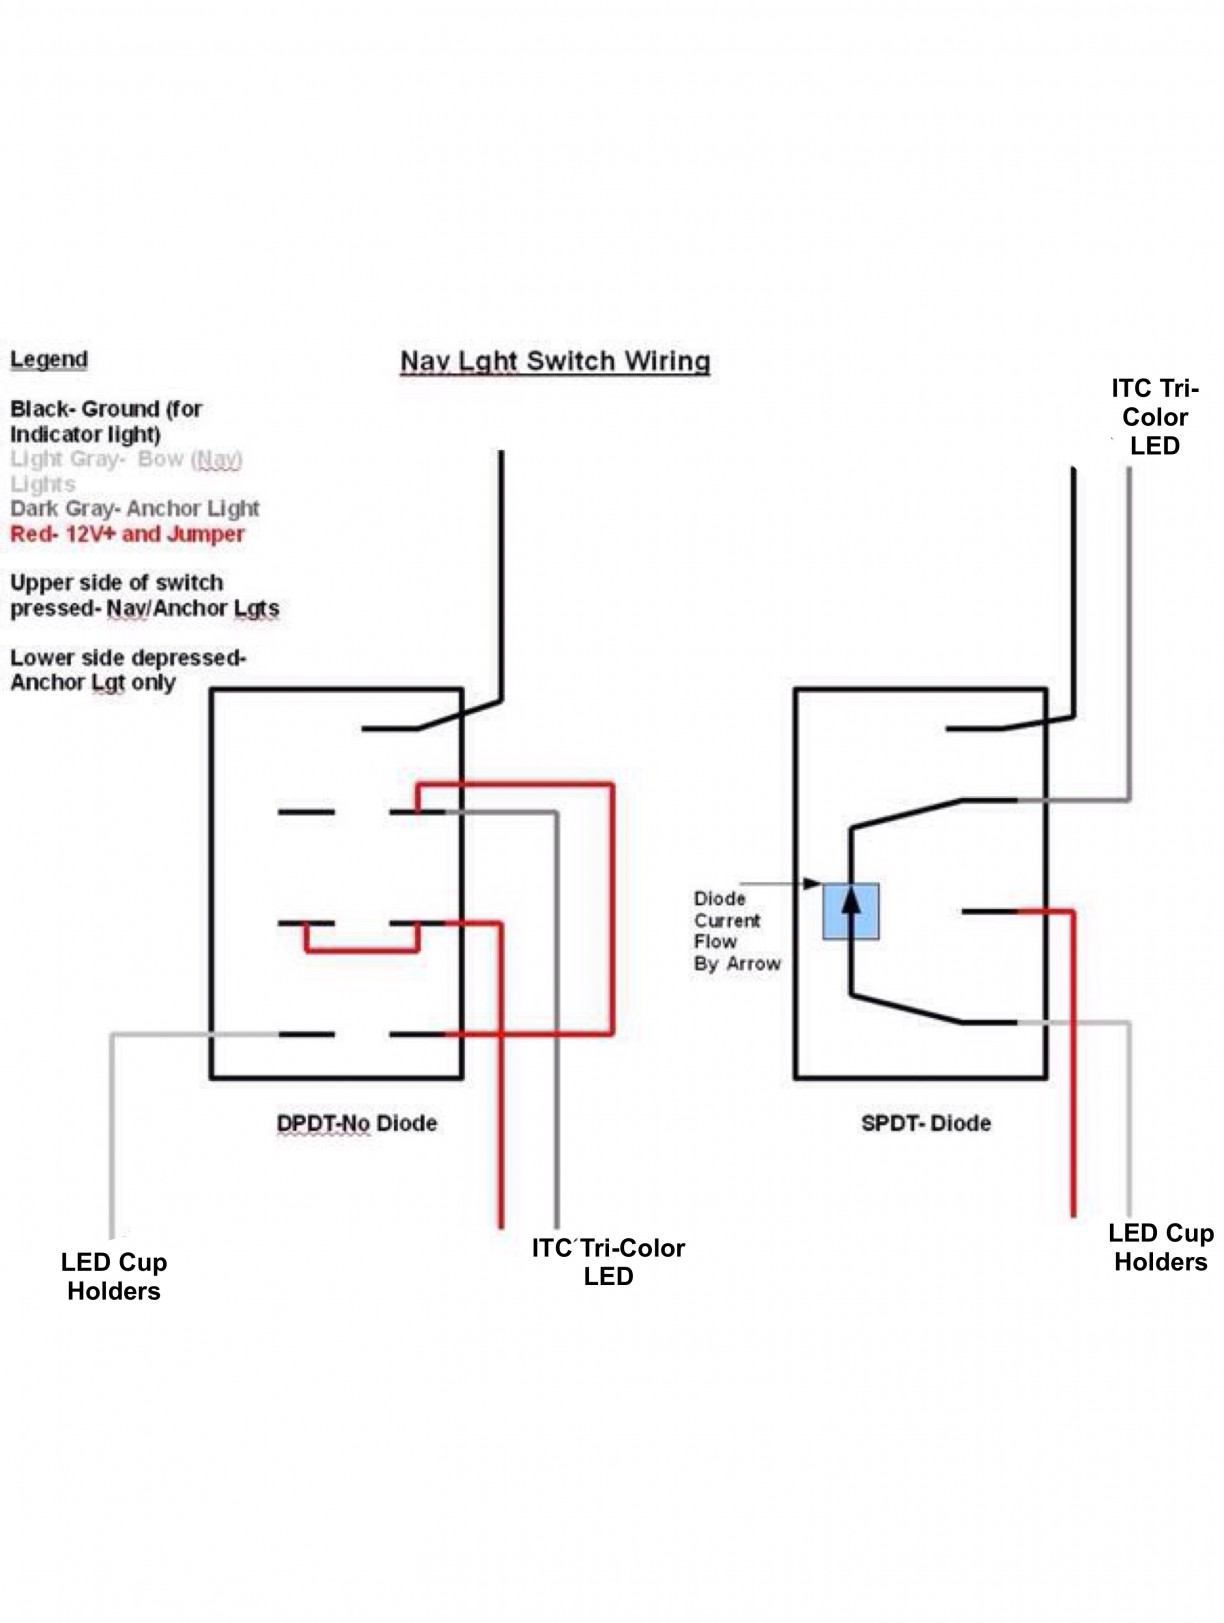 Pontoonoat Wiring Diagram For Lights The Readingrat Net Ctzfr3mjs448 Fisher Pontoon Boat Wires Electrical Circuit Diagnoses